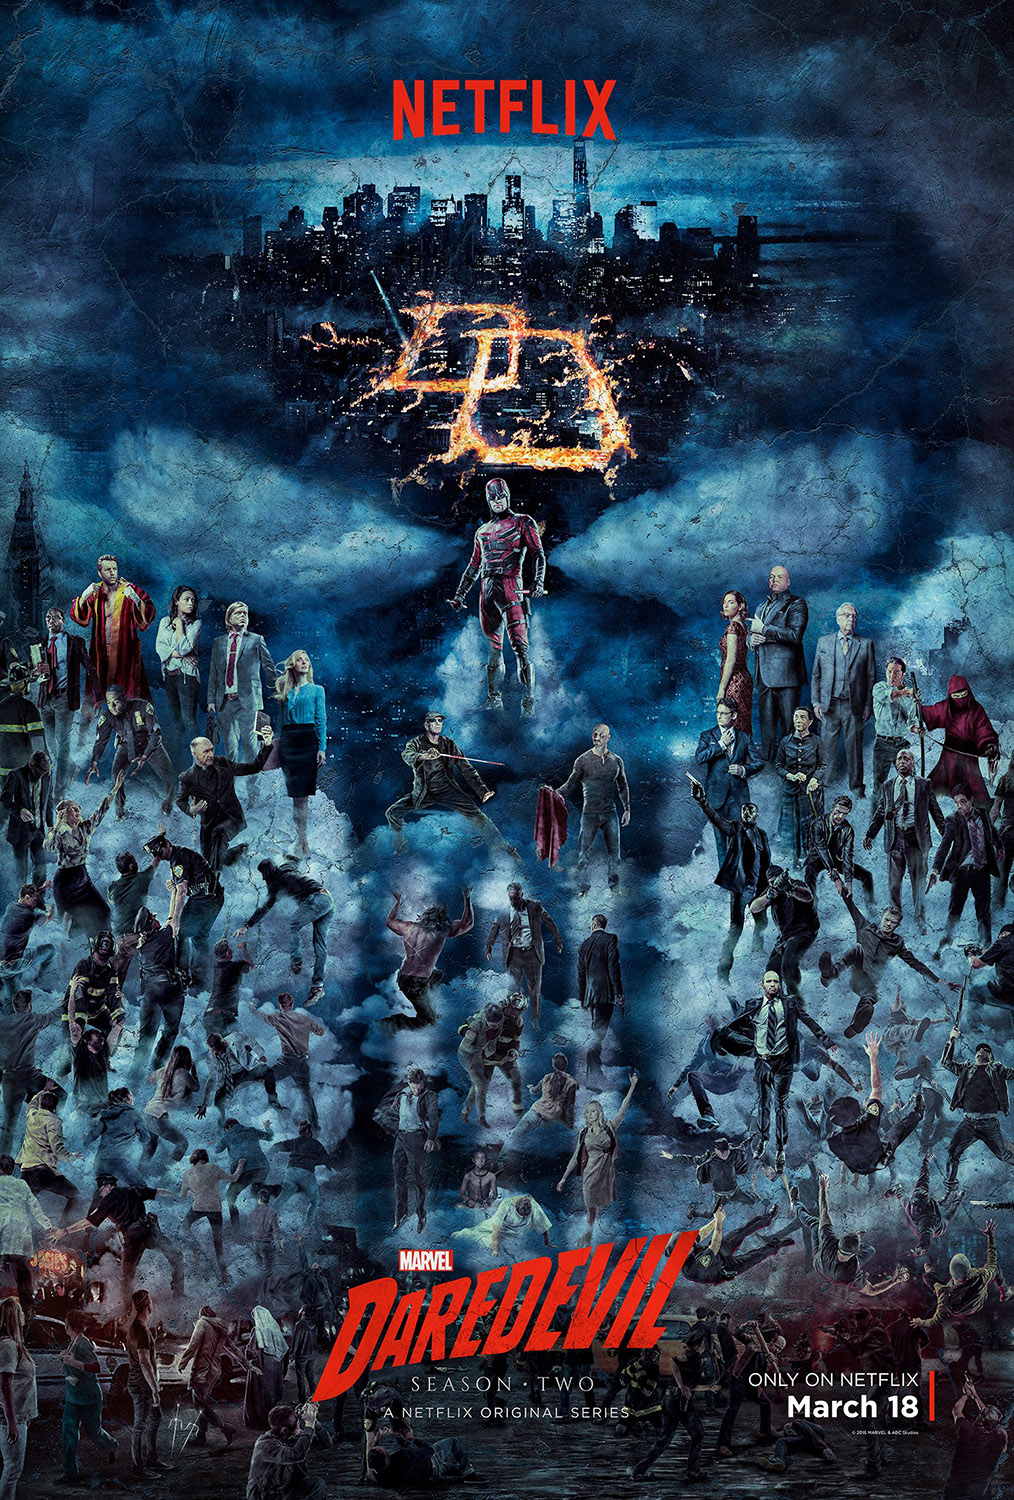 Daredevil - Season 2 - Poster